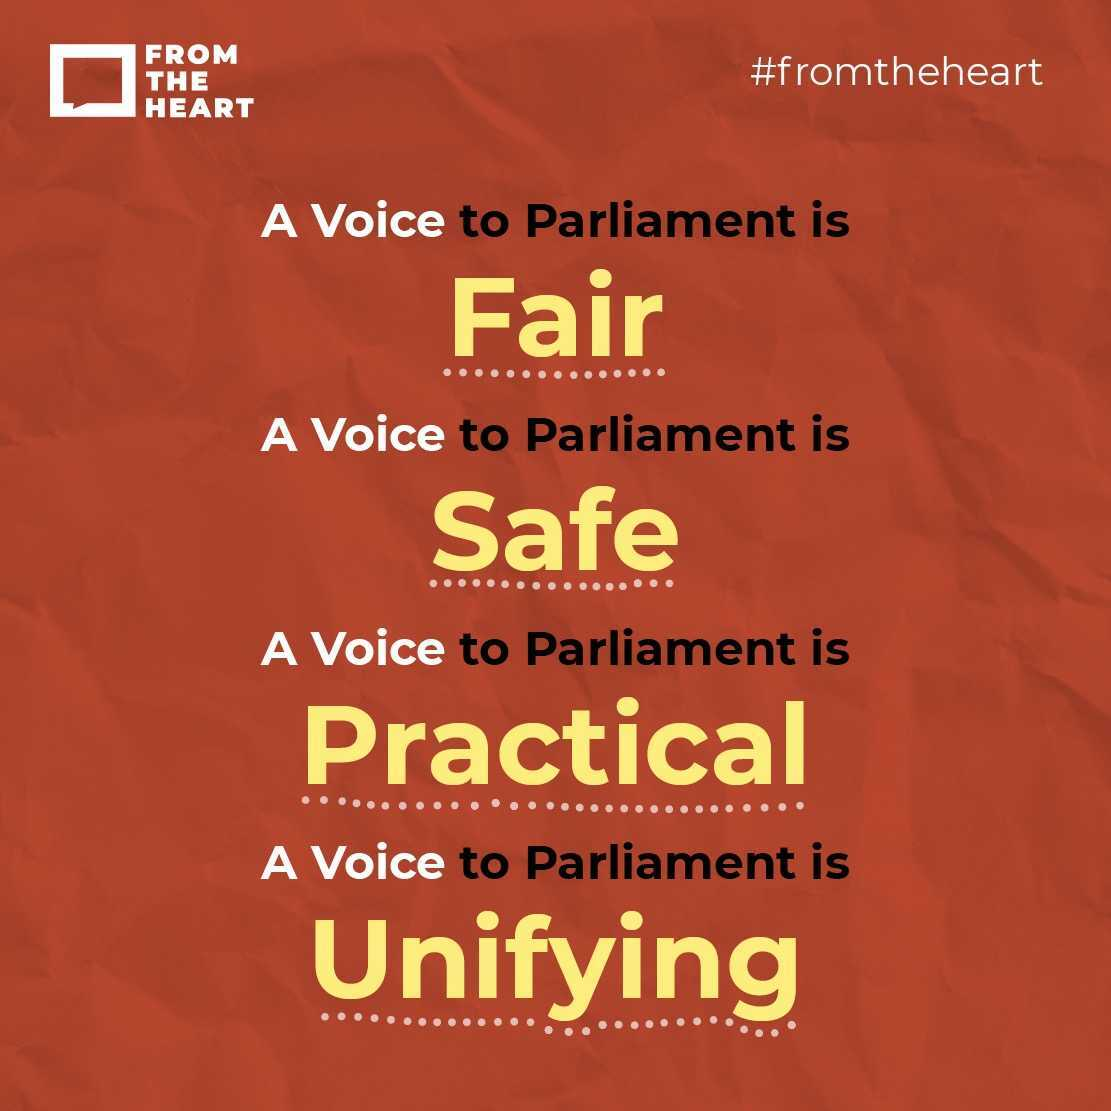 A Voice to Parliament is fair, safe, practical and unifying Instagram template